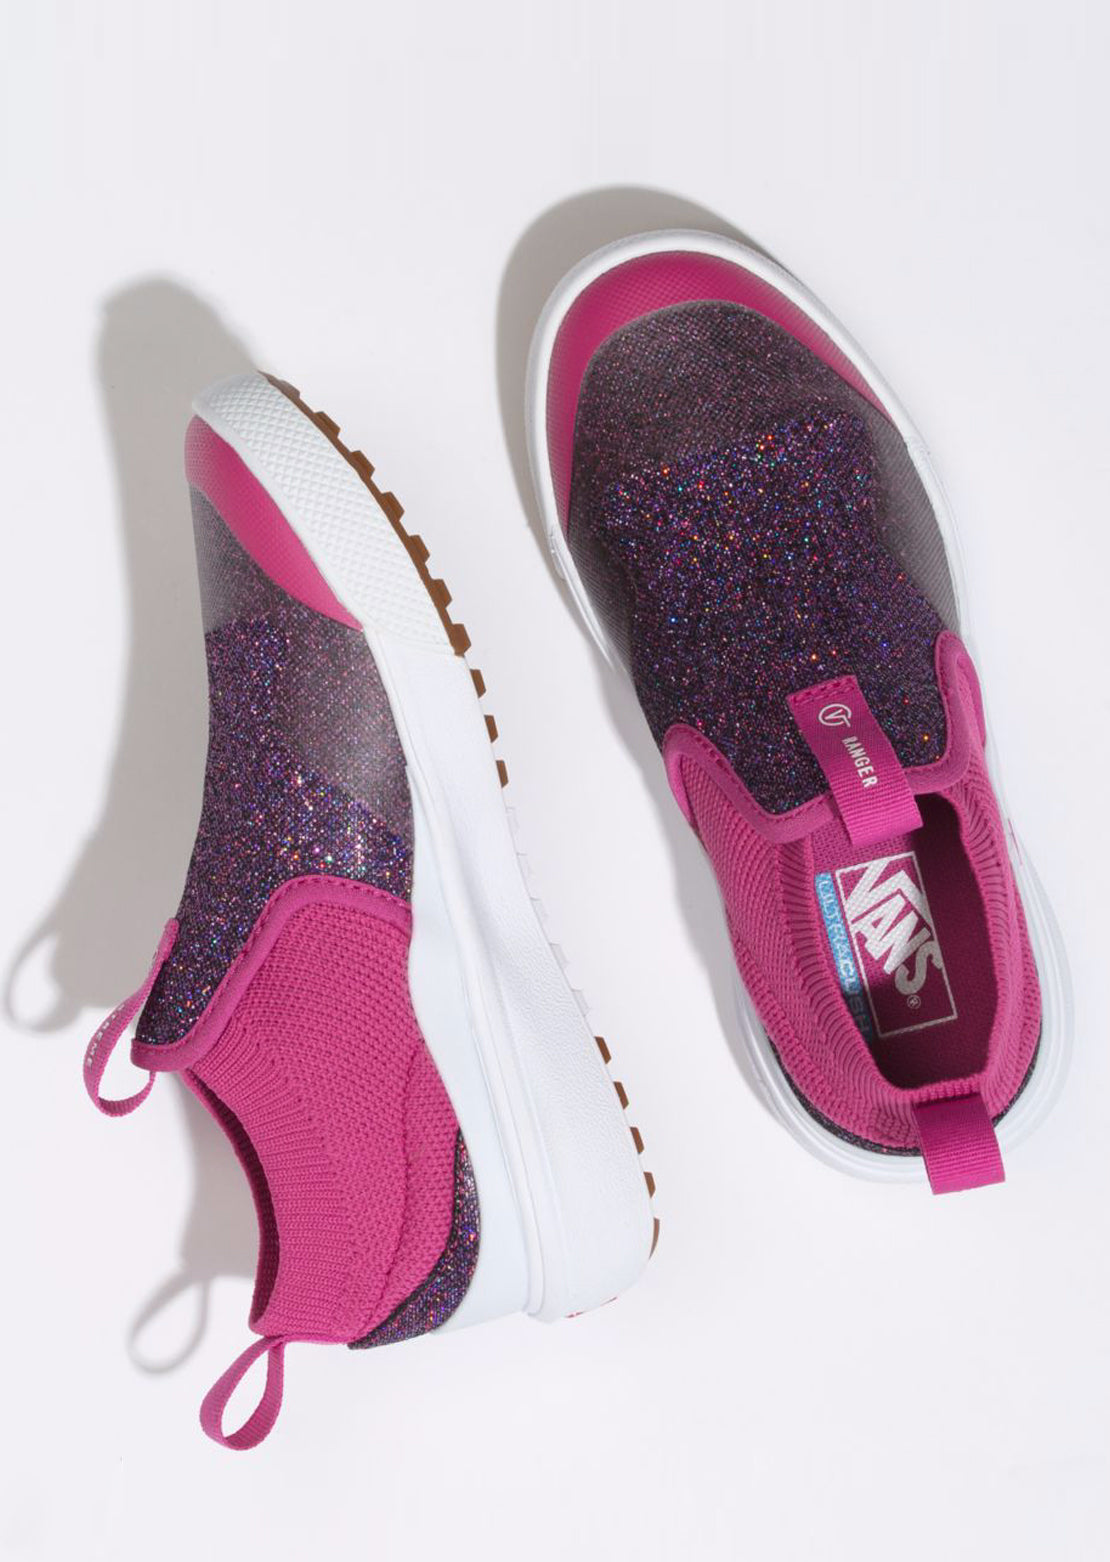 Vans Junior Xtreme Ranger Glitter Mesh Shoes (Glitter Mesh) Purple/True White